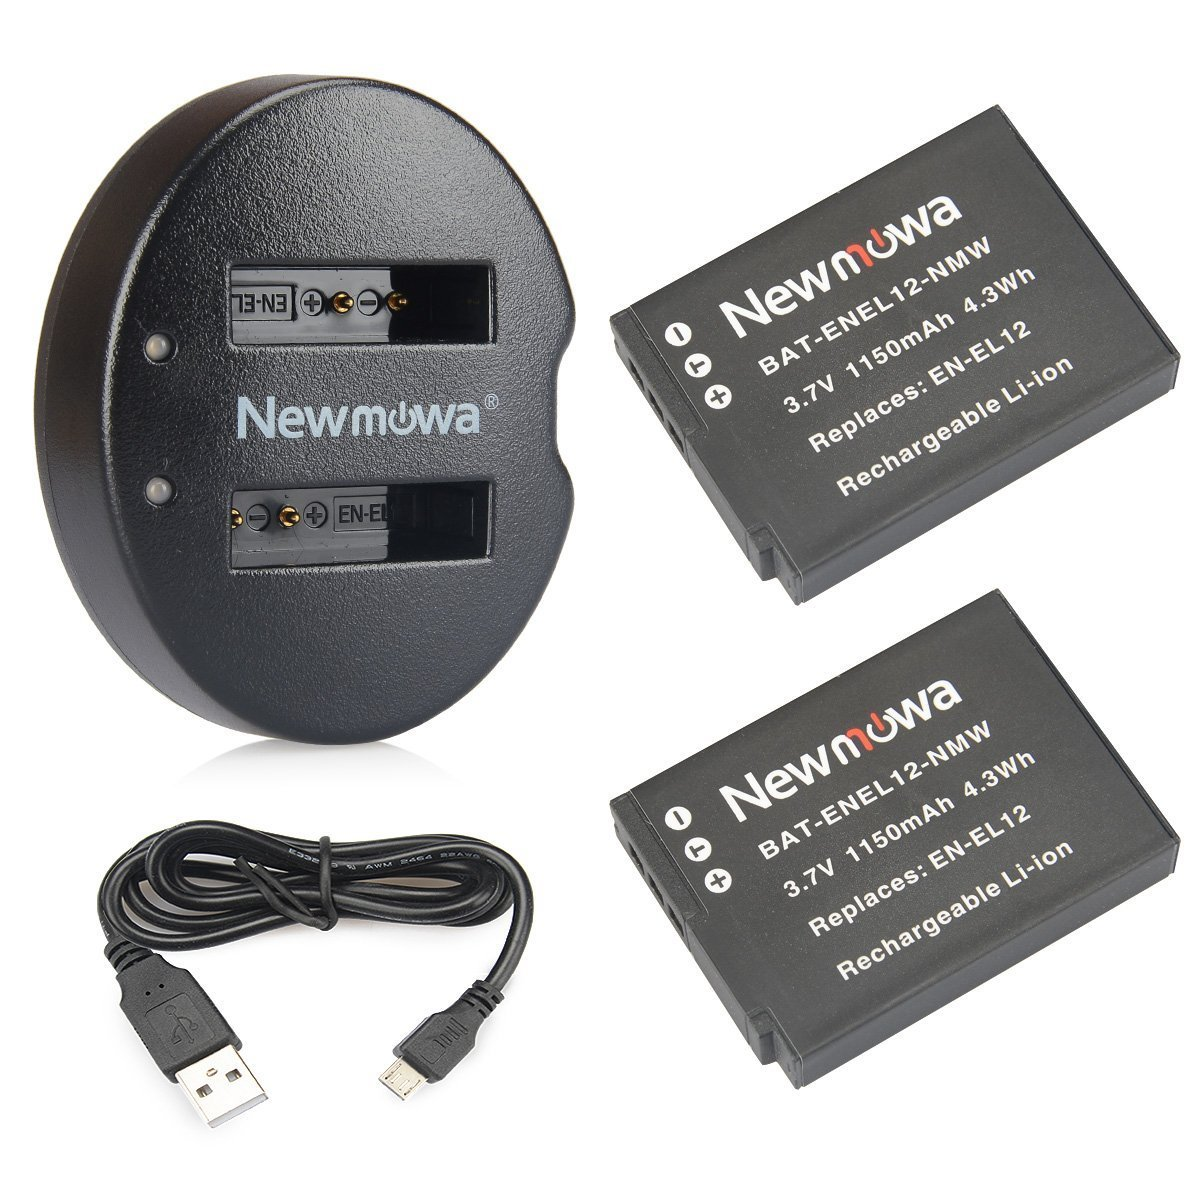 EN-EL12 Newmowa Replacement Battery (2-Pack) and Dual USB Charger for Nikon EN-EL12 and Nikon Coolpix AW100 AW100s AW110 AW110s AW120 P330 P340 S310 S70 S610 S620 S630 S640 S800c S1100pj S1200pj by Newmowa